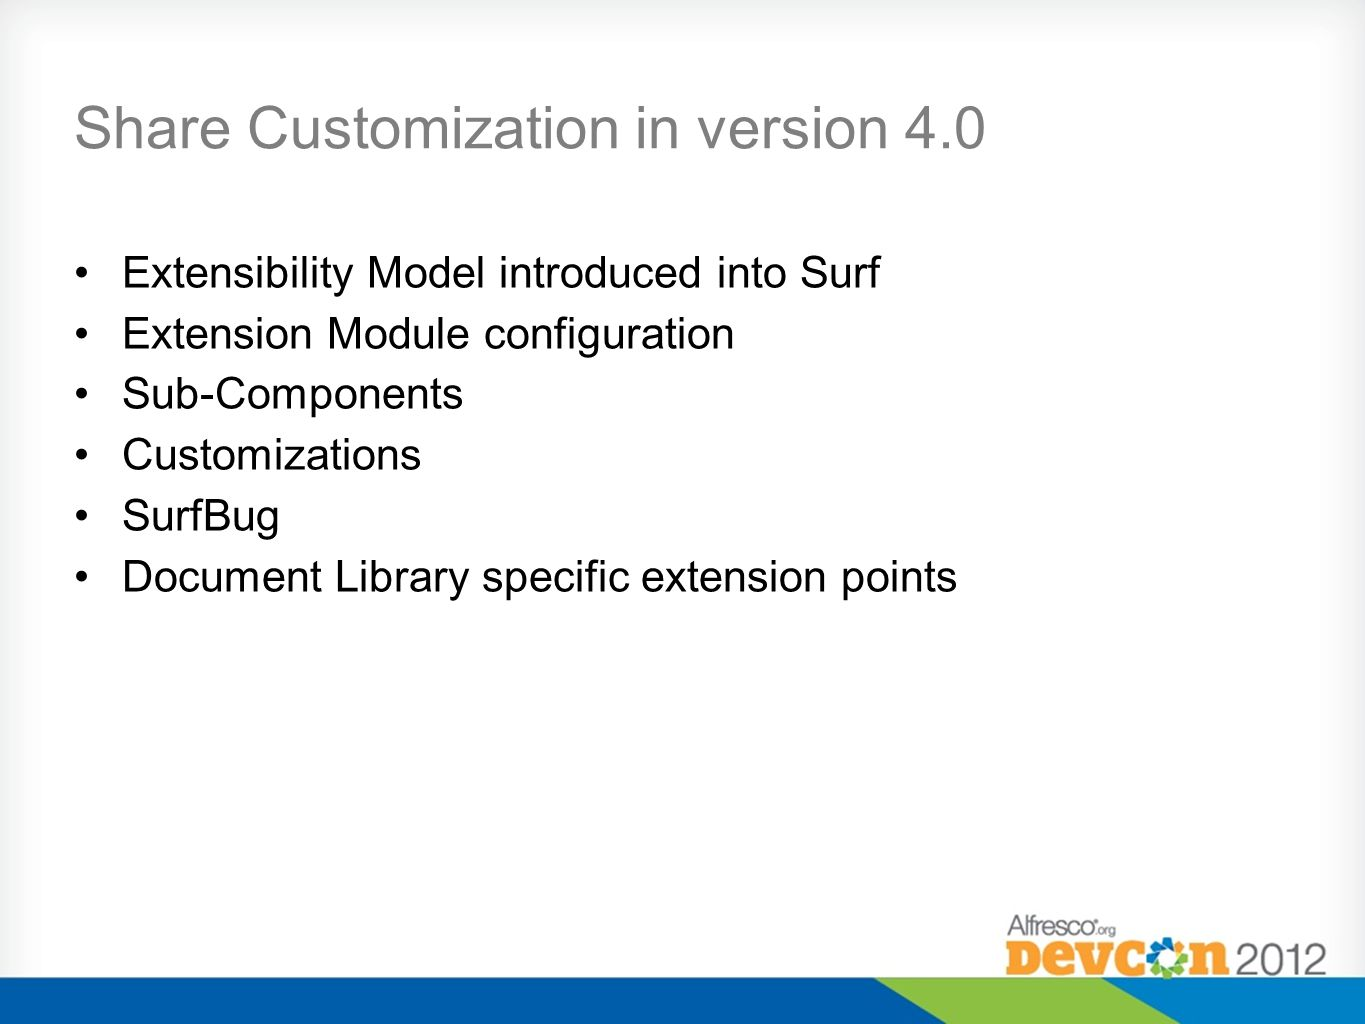 Share Customization in version 4.0 Extensibility Model introduced into Surf Extension Module configuration Sub-Components Customizations SurfBug Docum